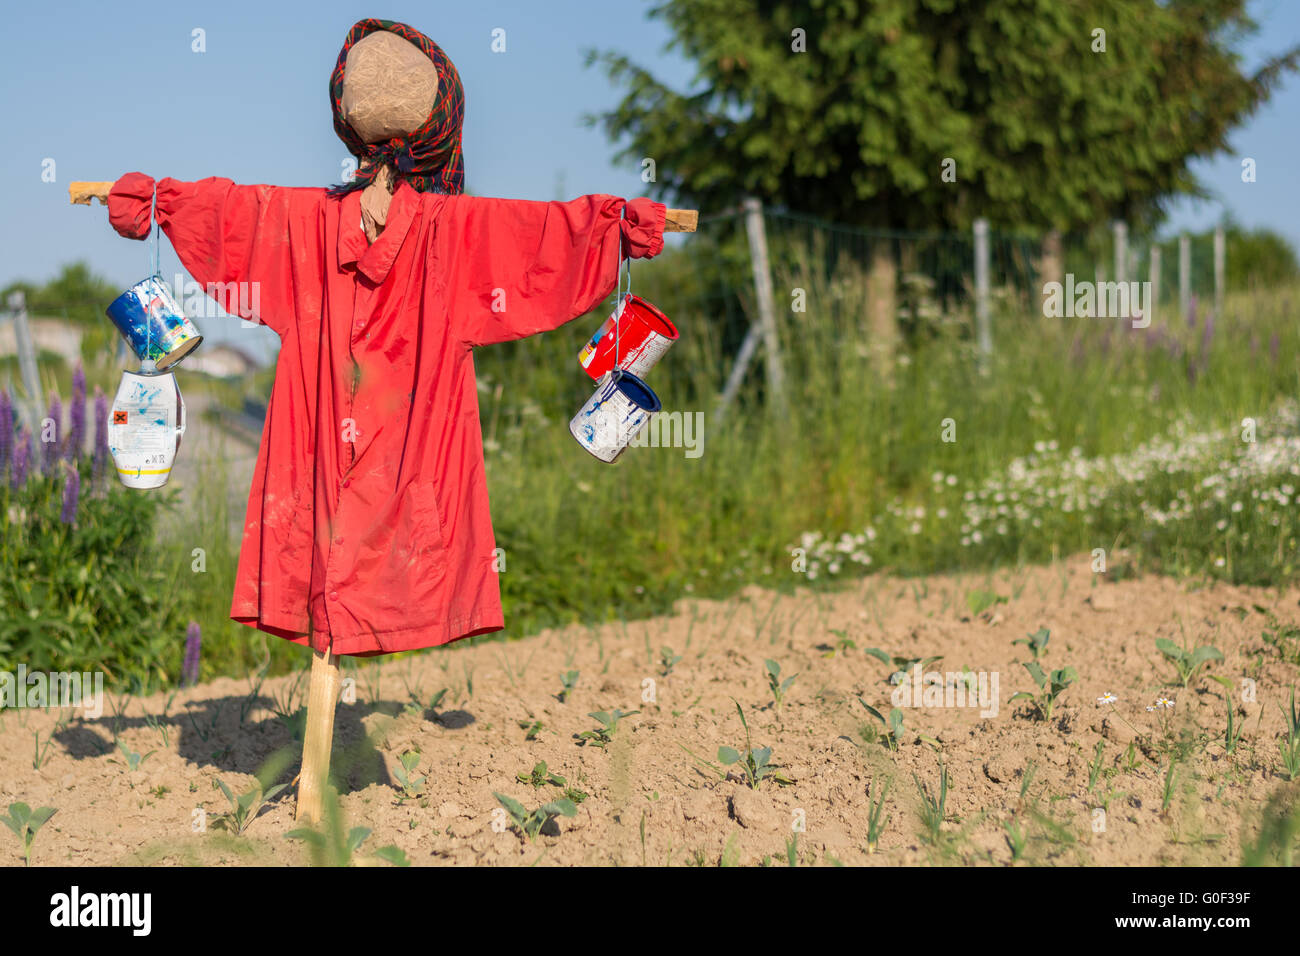 funny clad scarecrow in a field - Stock Image